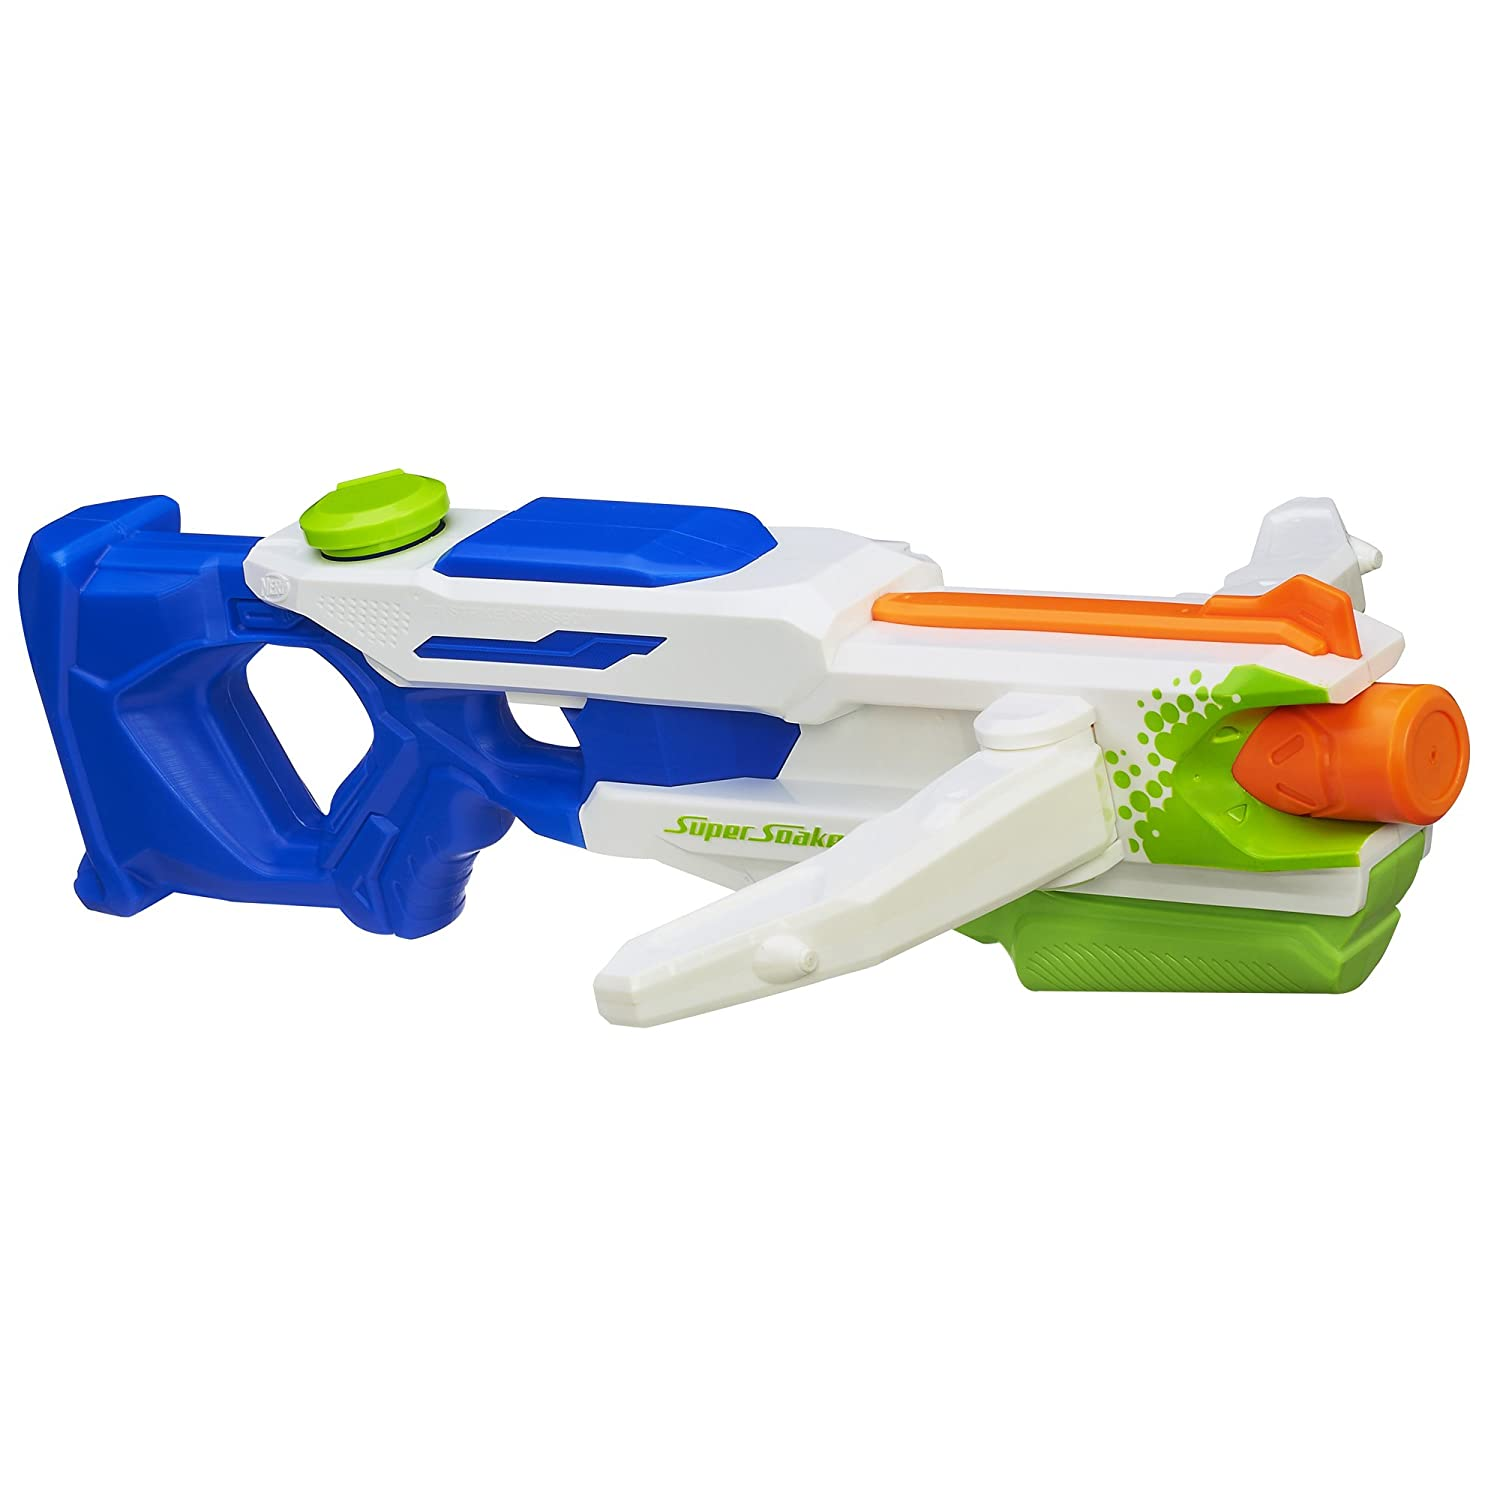 Nerf Super Soaker Crossbow Soaker